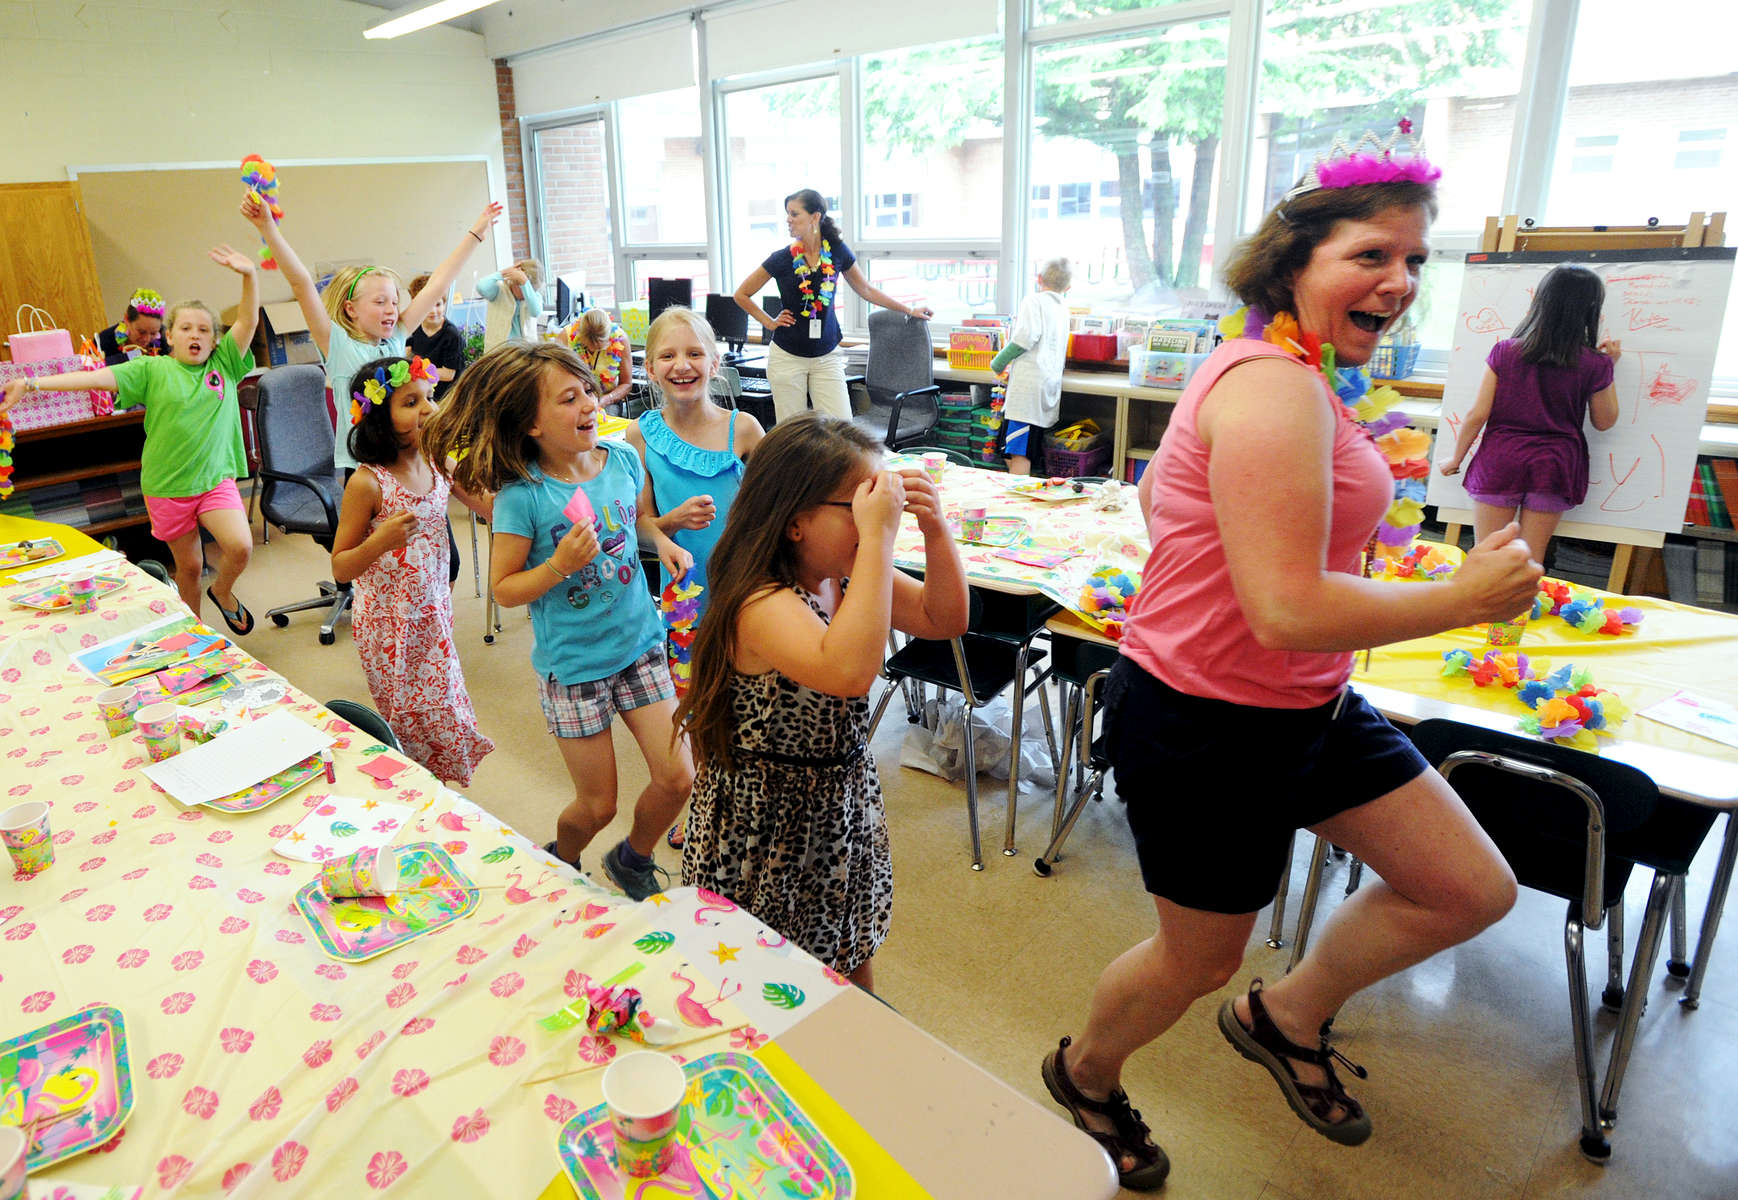 Kensington Road Elementary School teacher Pam Laurent leads third-graders in a dance party minutes before dismissal on the last day of the school year Thursday, June 26, 2014. Glens Falls elementary students were dismissed at 9:30 a.m. Thursday, which gave them just enough time to receive their report cards, get their yearbooks signed by classmates and teachers, and have a little fun before the beginning of summer break.(Jason McKibben - jmckibben@poststar.com)